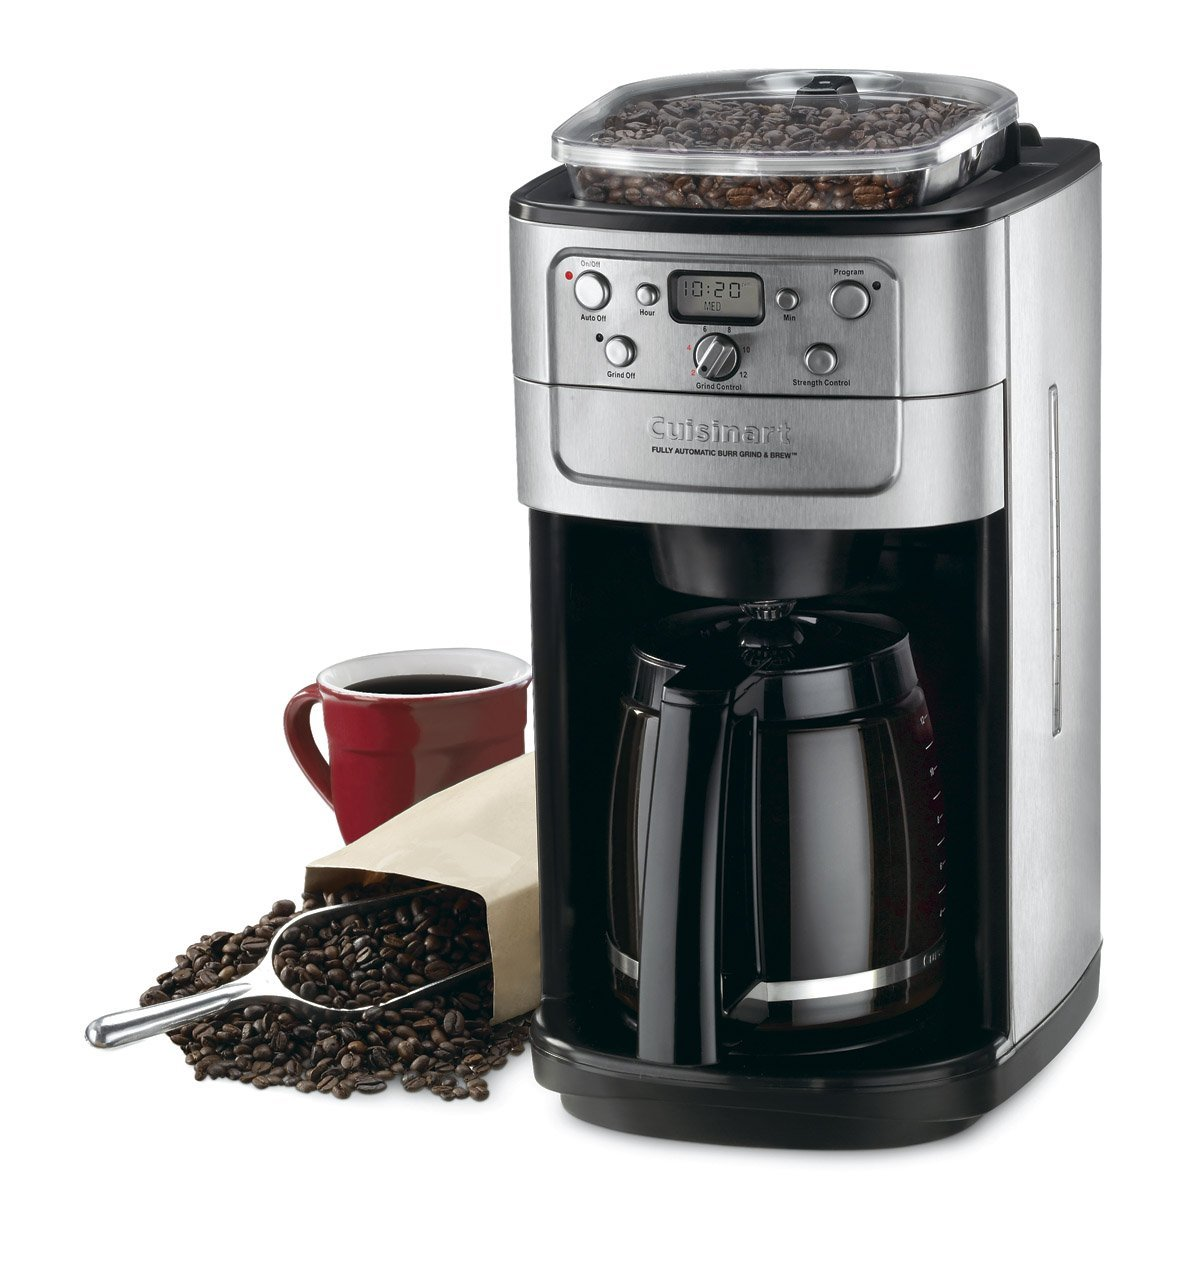 Cuisinart DGB-700BC Grind-and-Brew Automatic Coffeemaker Review - Coffee Drinker